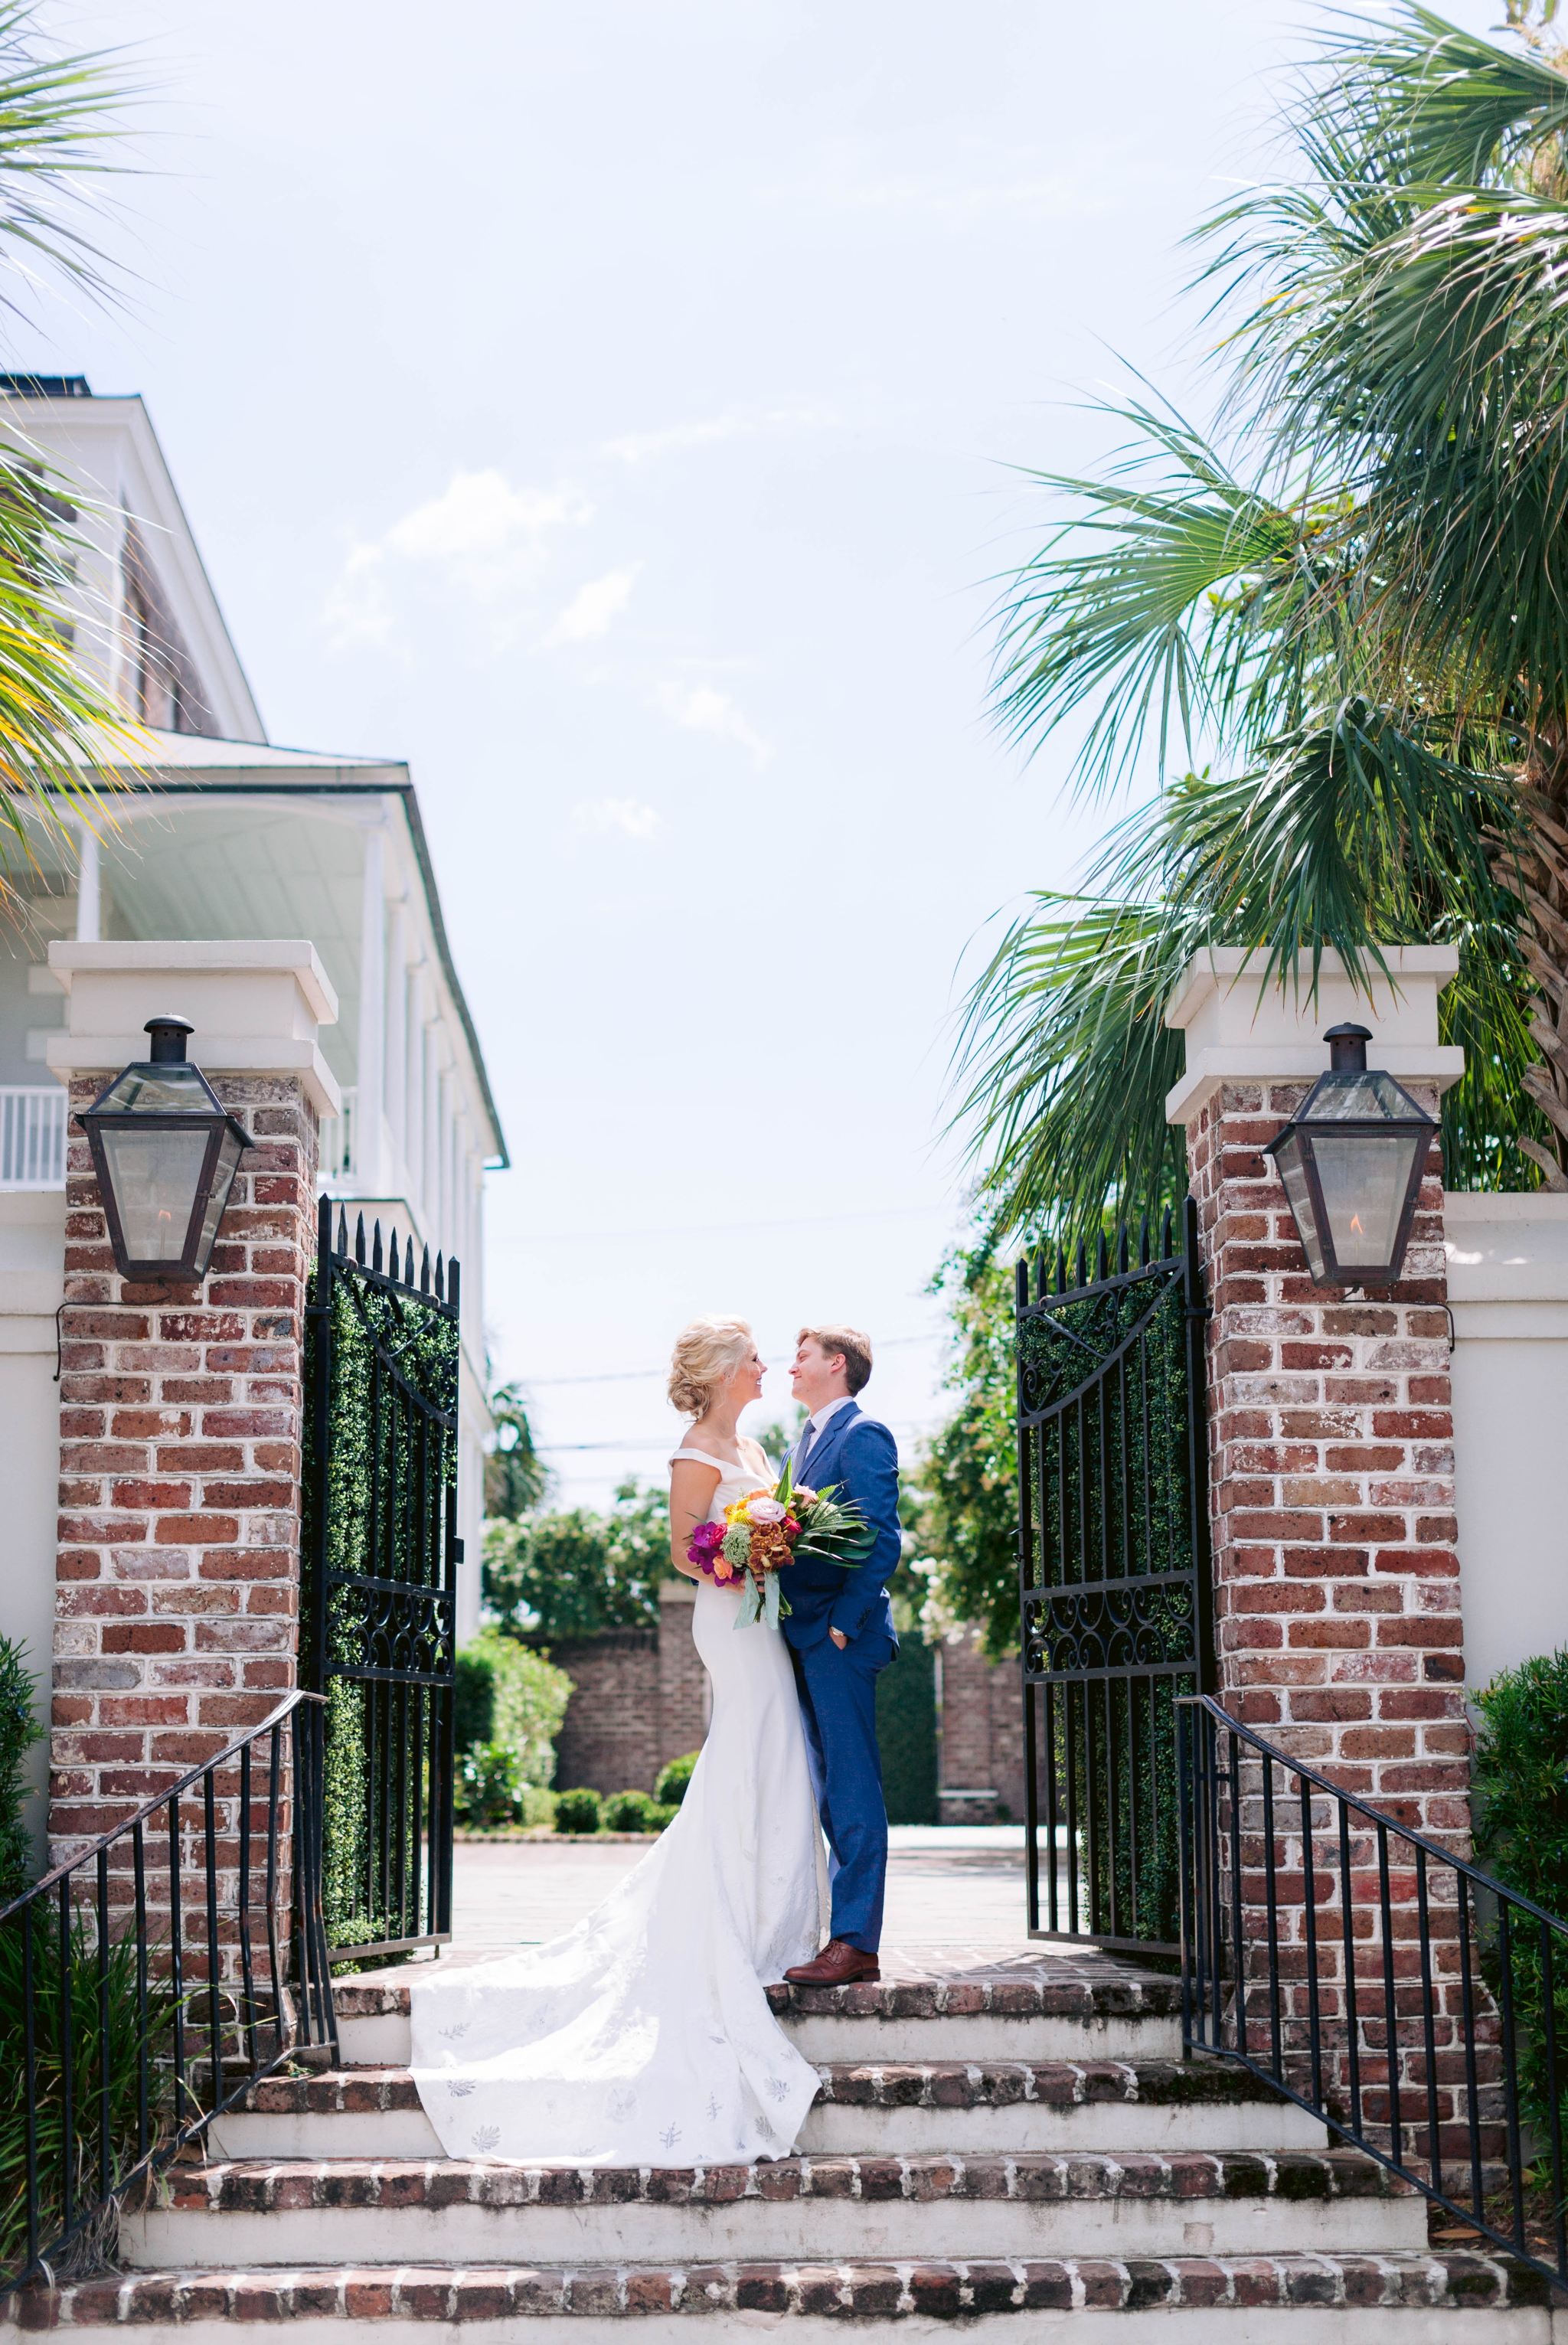 Bride and Groom Portraits at the gorgeous entry gate with palm trees in the background - Navy, Green, Gold and Berry colored Tropical Wedding Inspiration for your Wedding in Hawaii! - Honolulu, Oahu, Hawaii Photographer - Fine Art Film Photography - Light and Airy